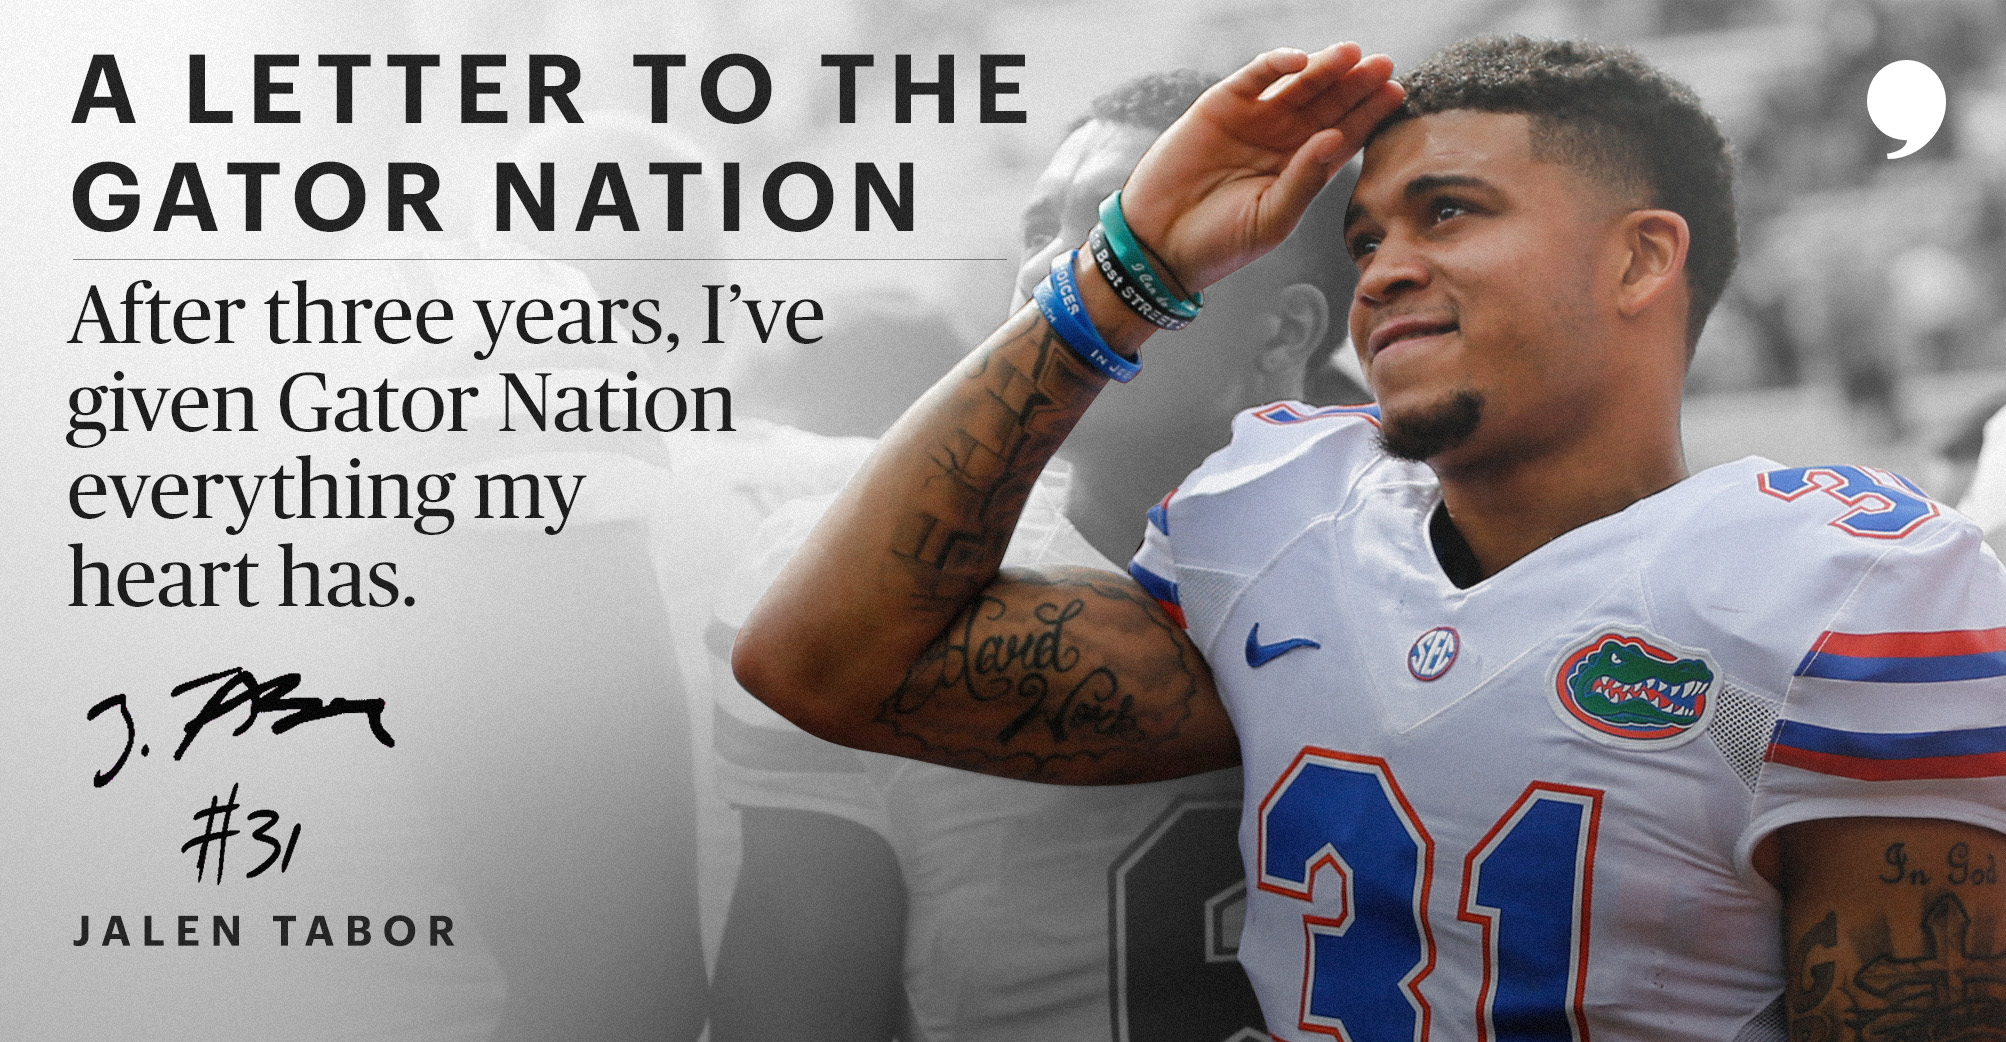 cheaper ec48d 6b3ee A Letter to the Gator Nation | By Jalen